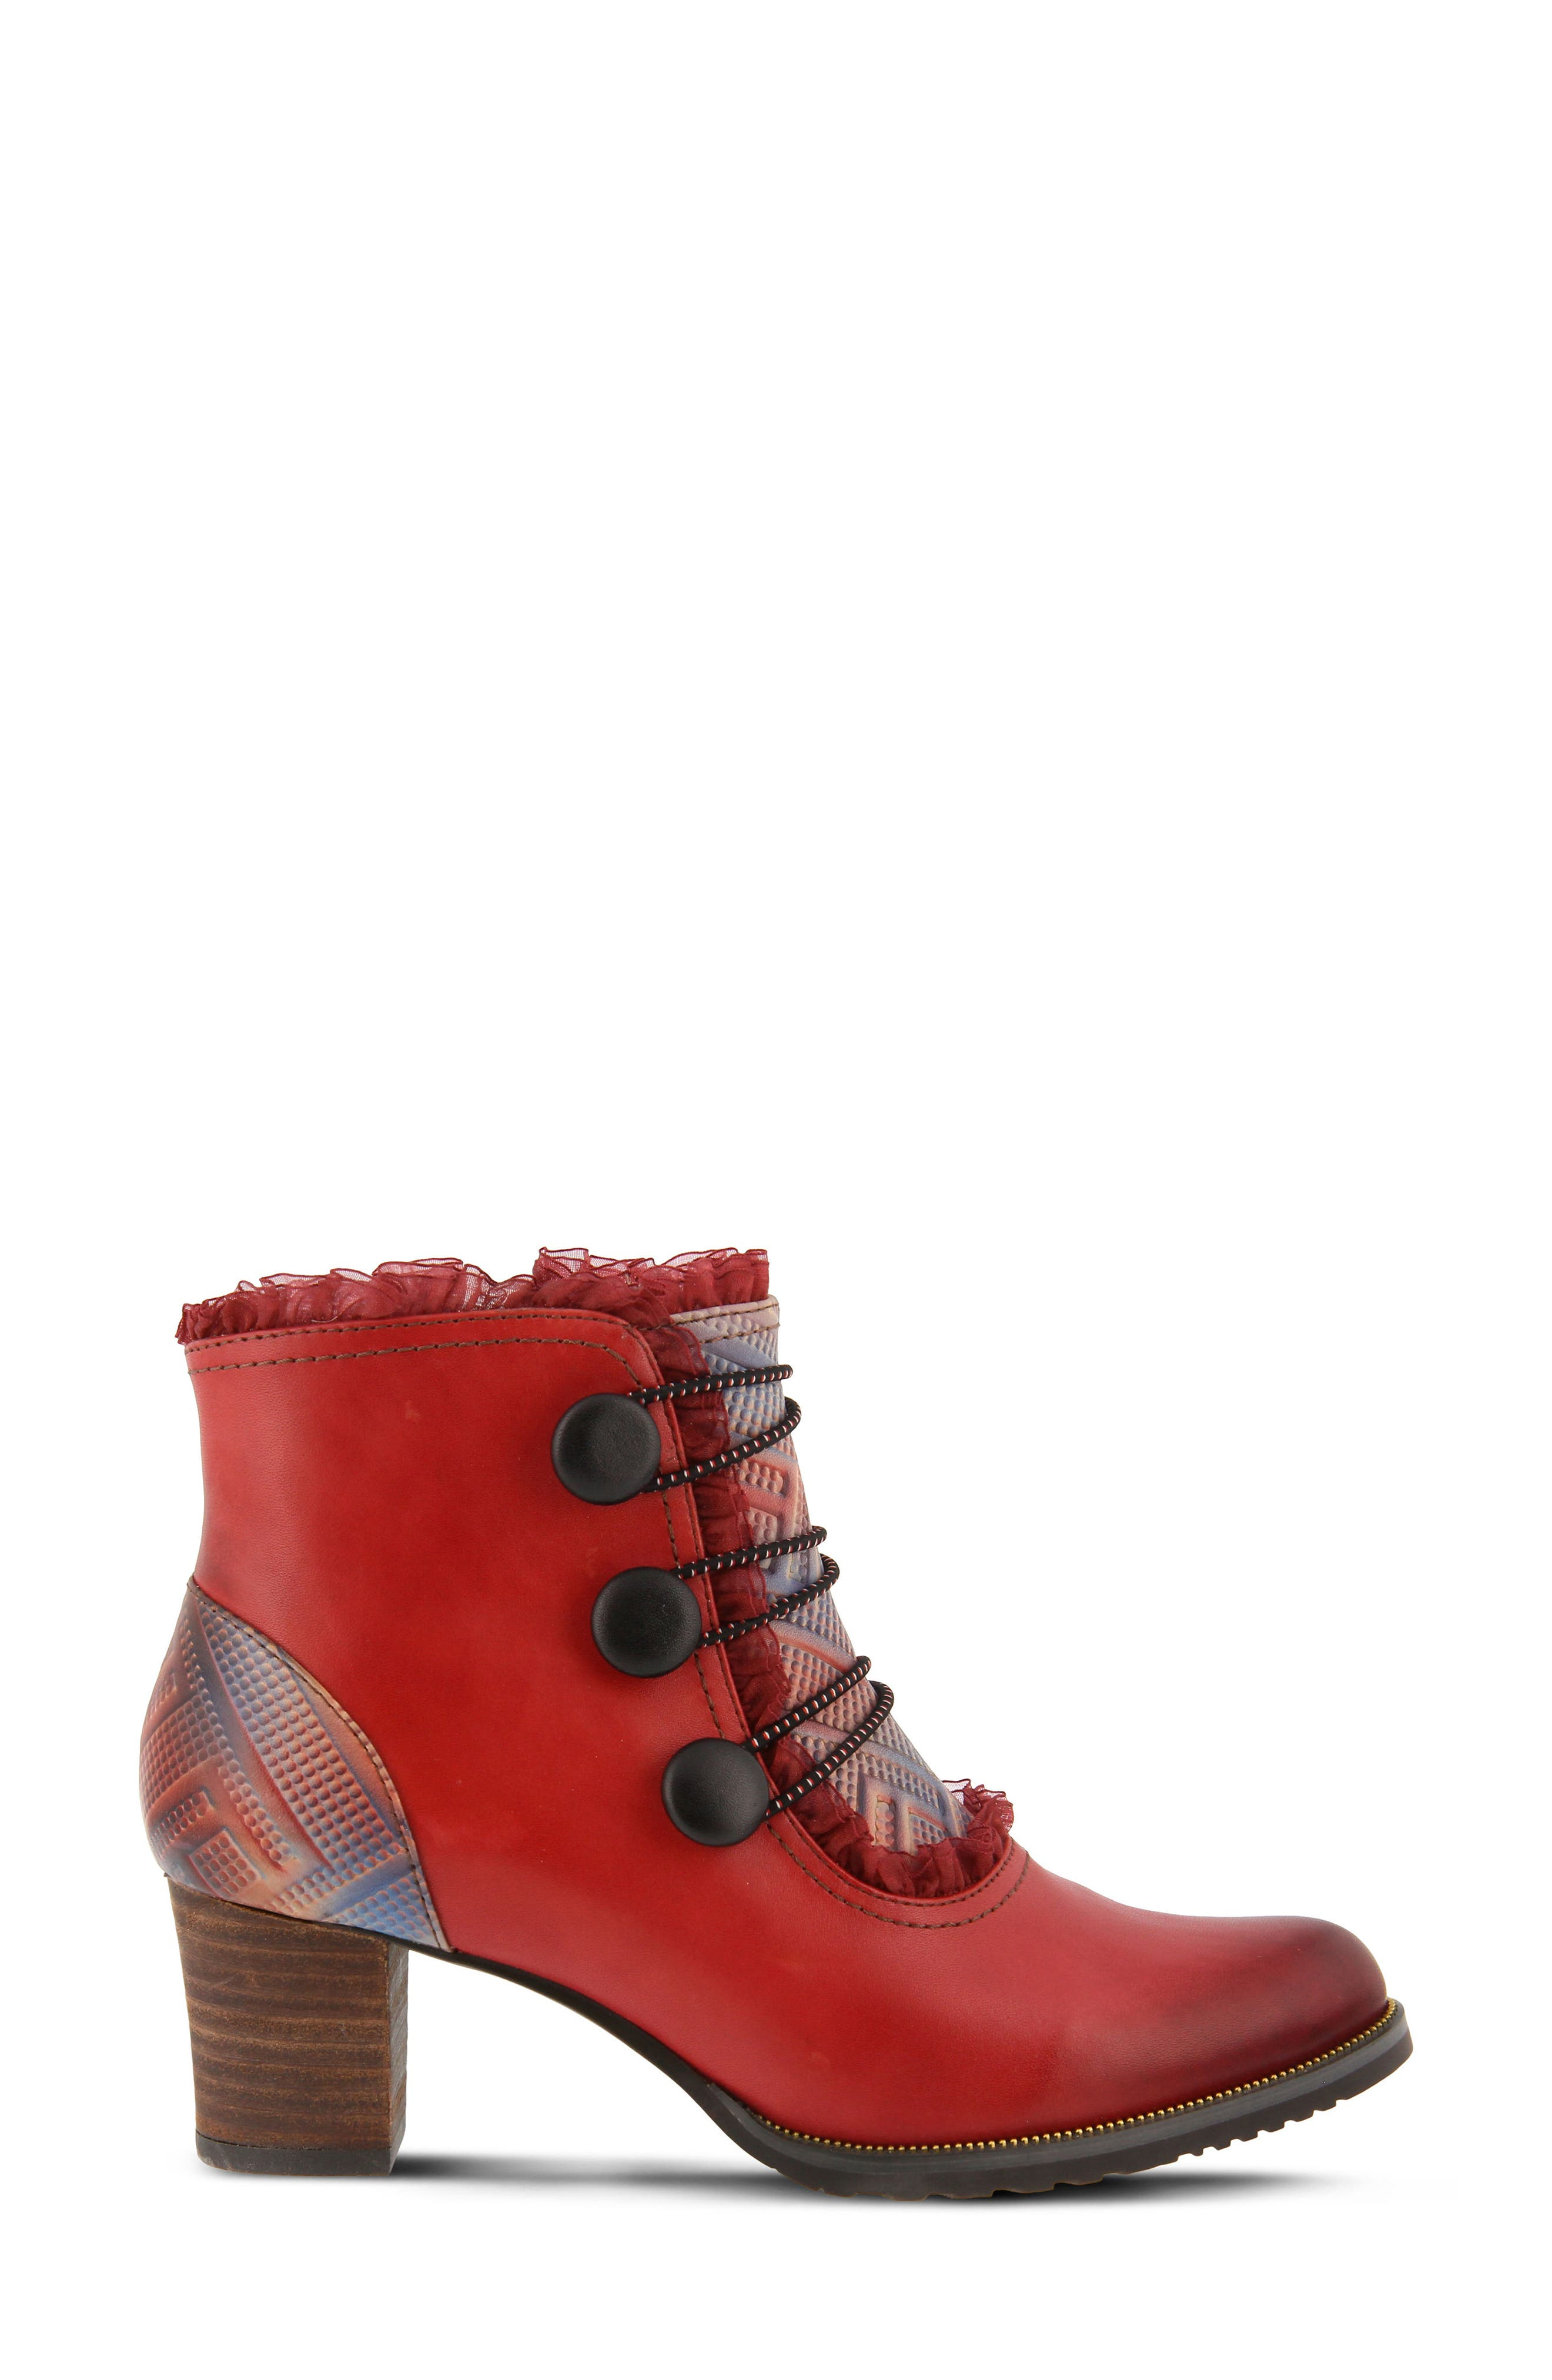 L'Artiste Conchita Boot,                             Alternate thumbnail 3, color,                             Red Leather